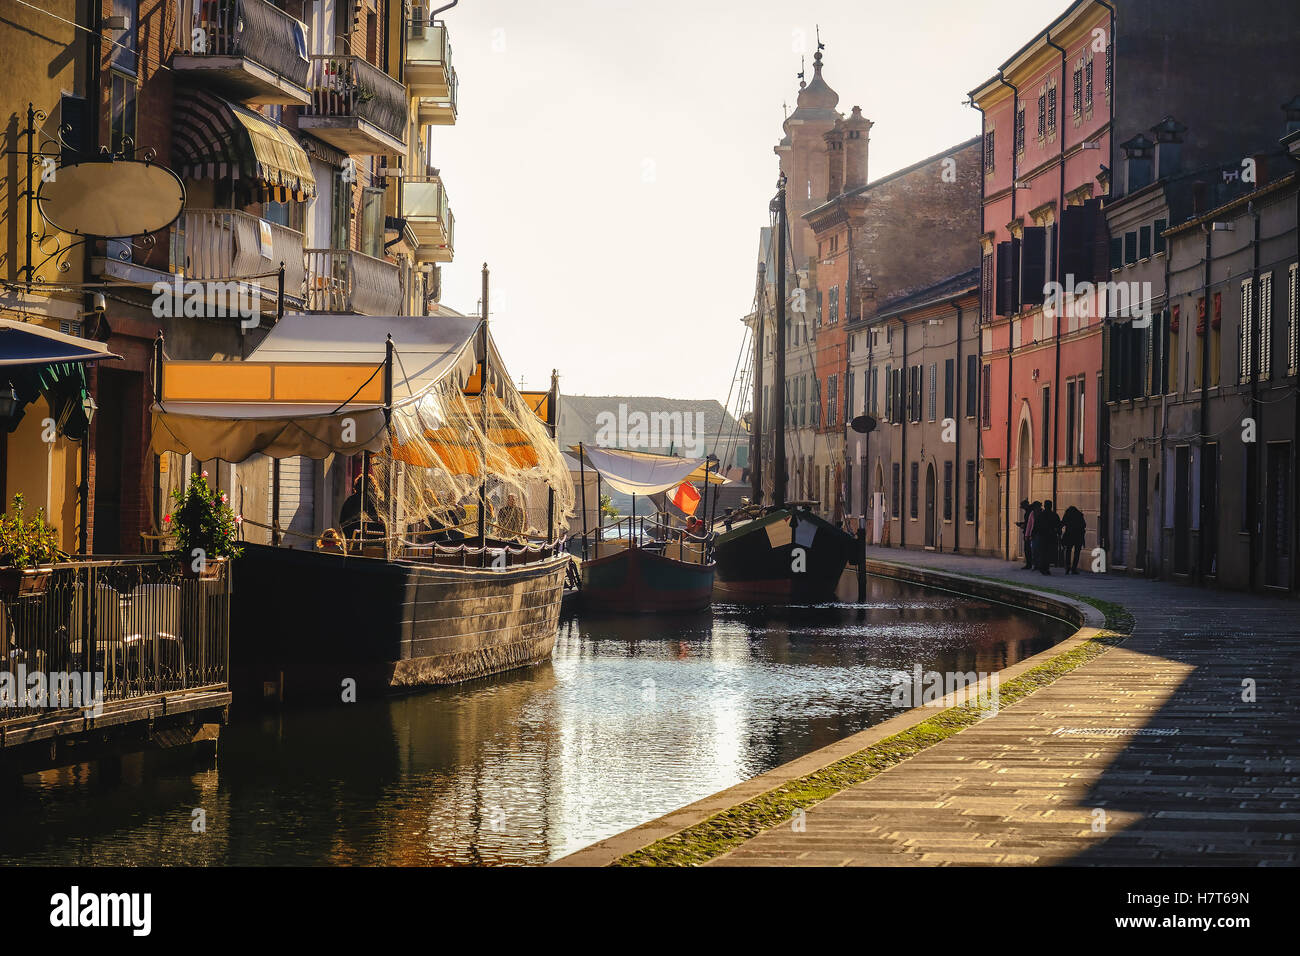 venice village sunset romantic haze shadow boat restaurant warm tone canal - Stock Image